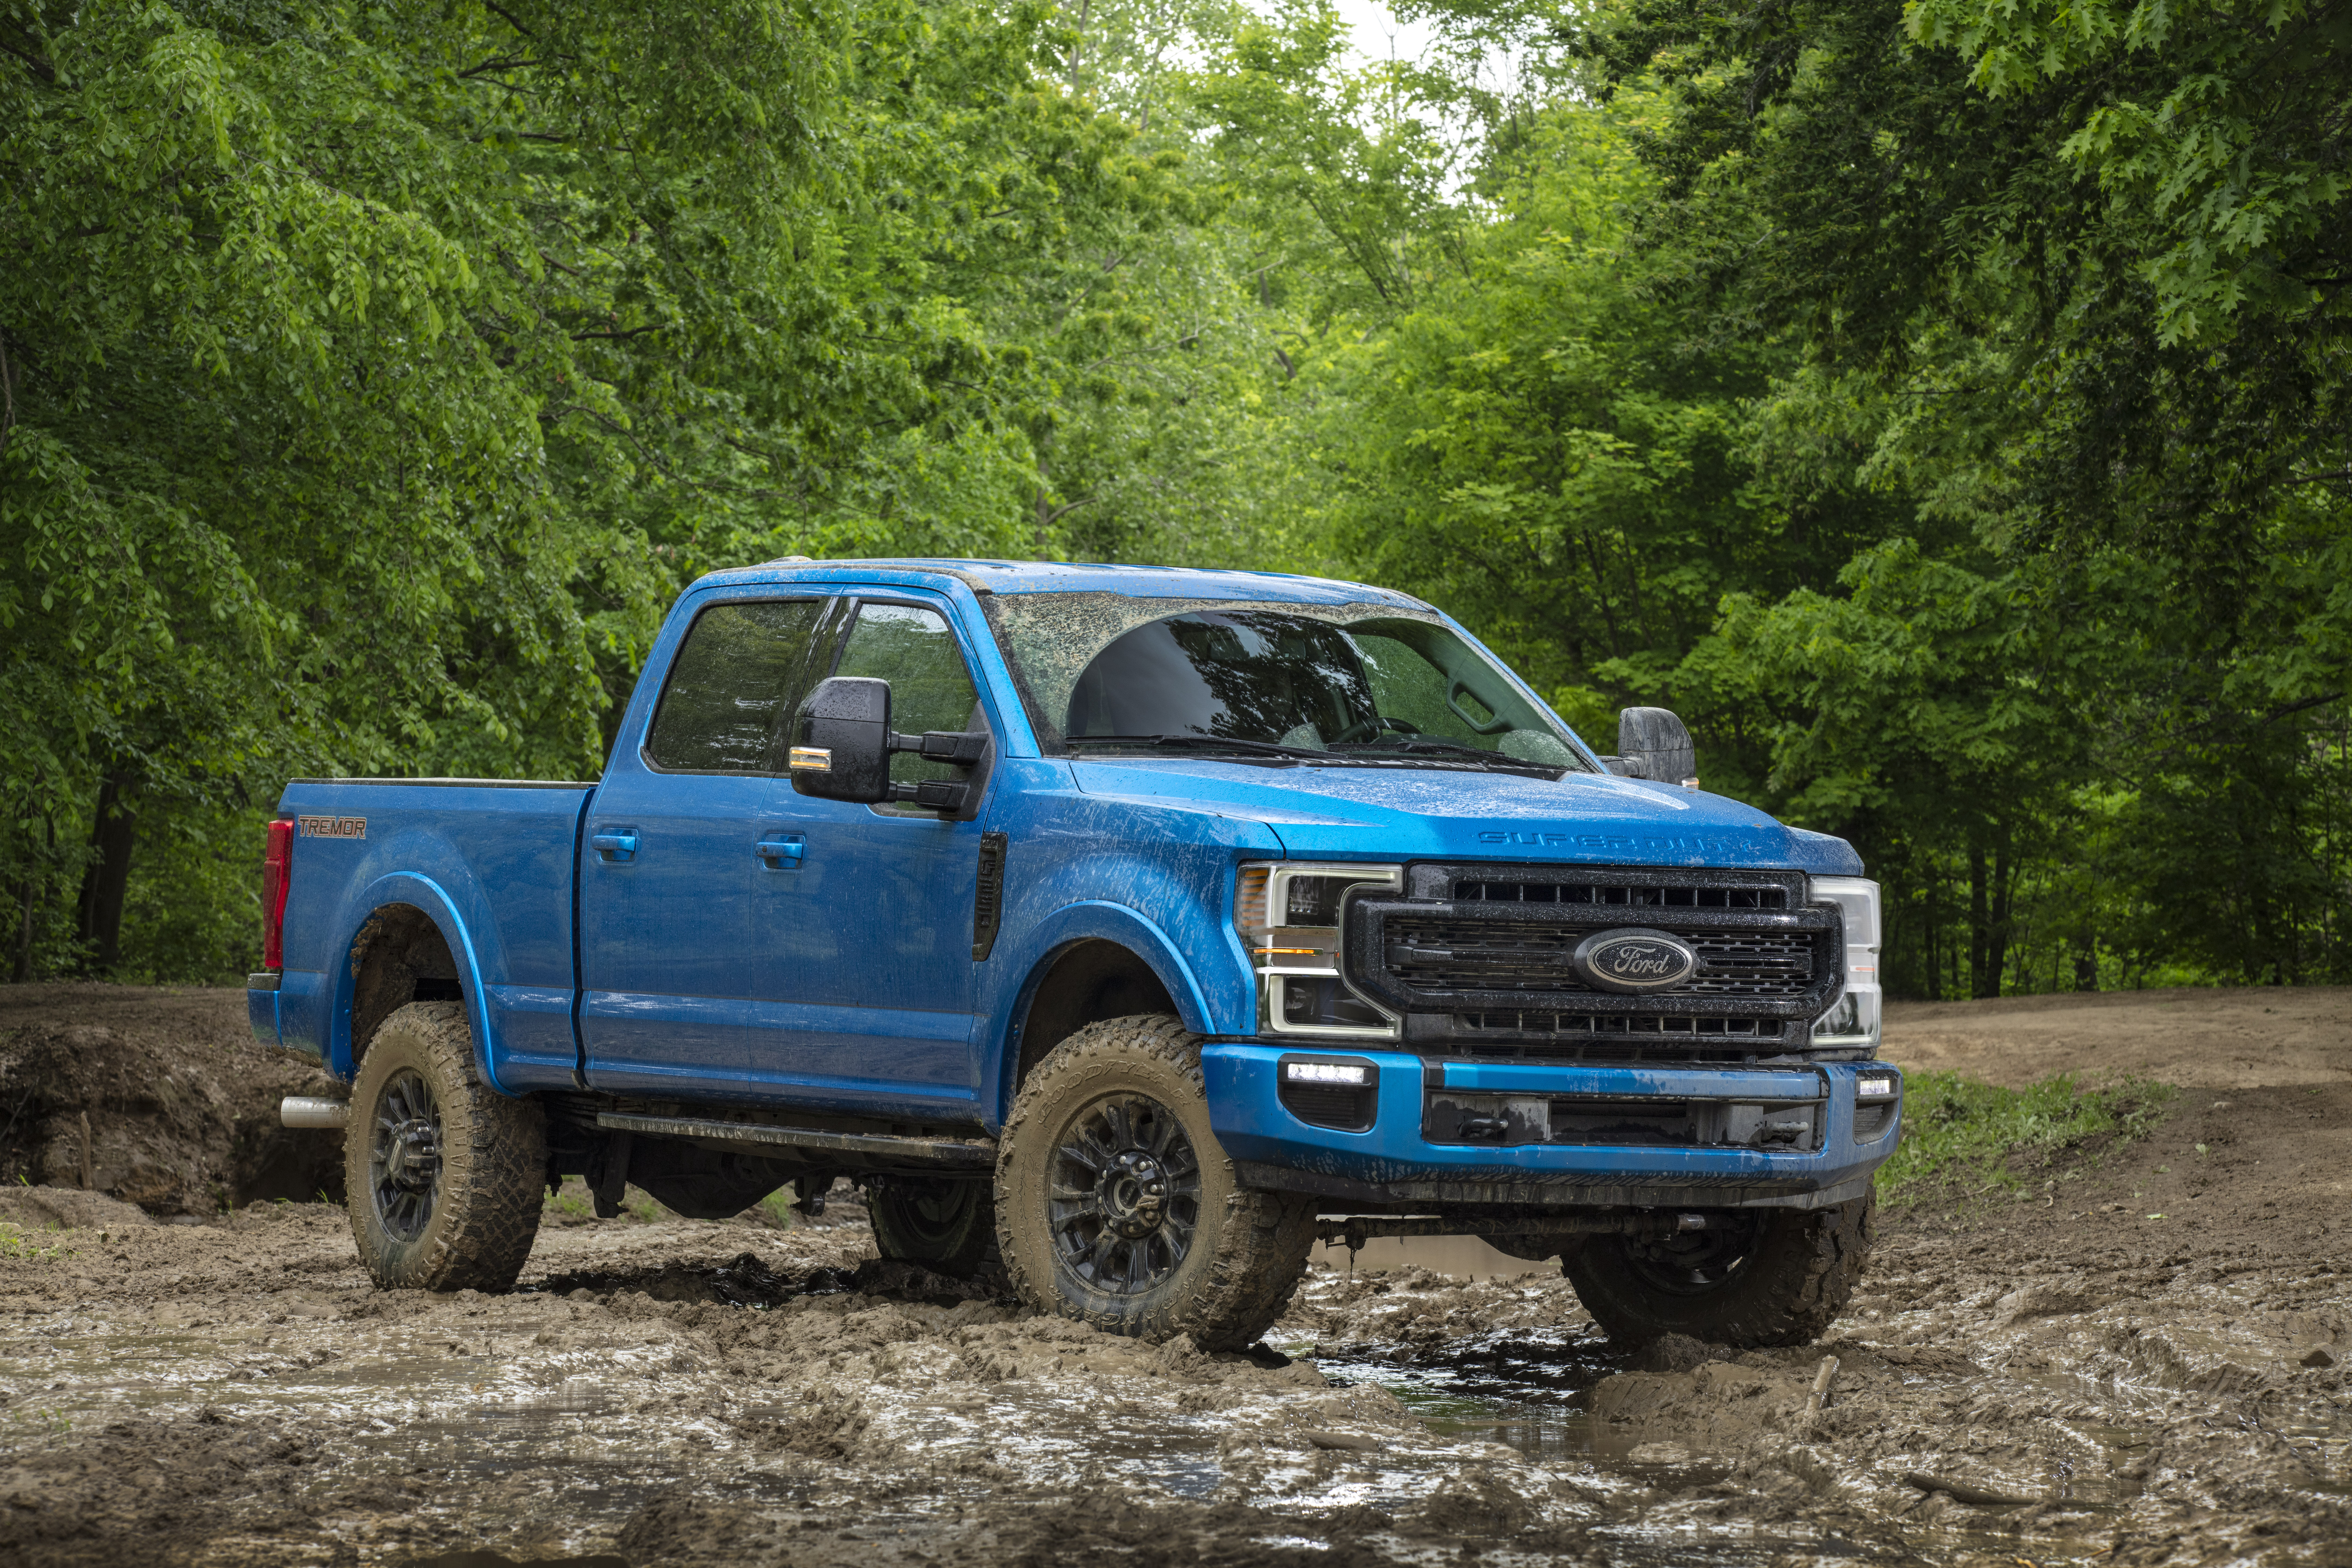 Ford To Release Super Duty Tremor Godzilla Off-Road Truck In